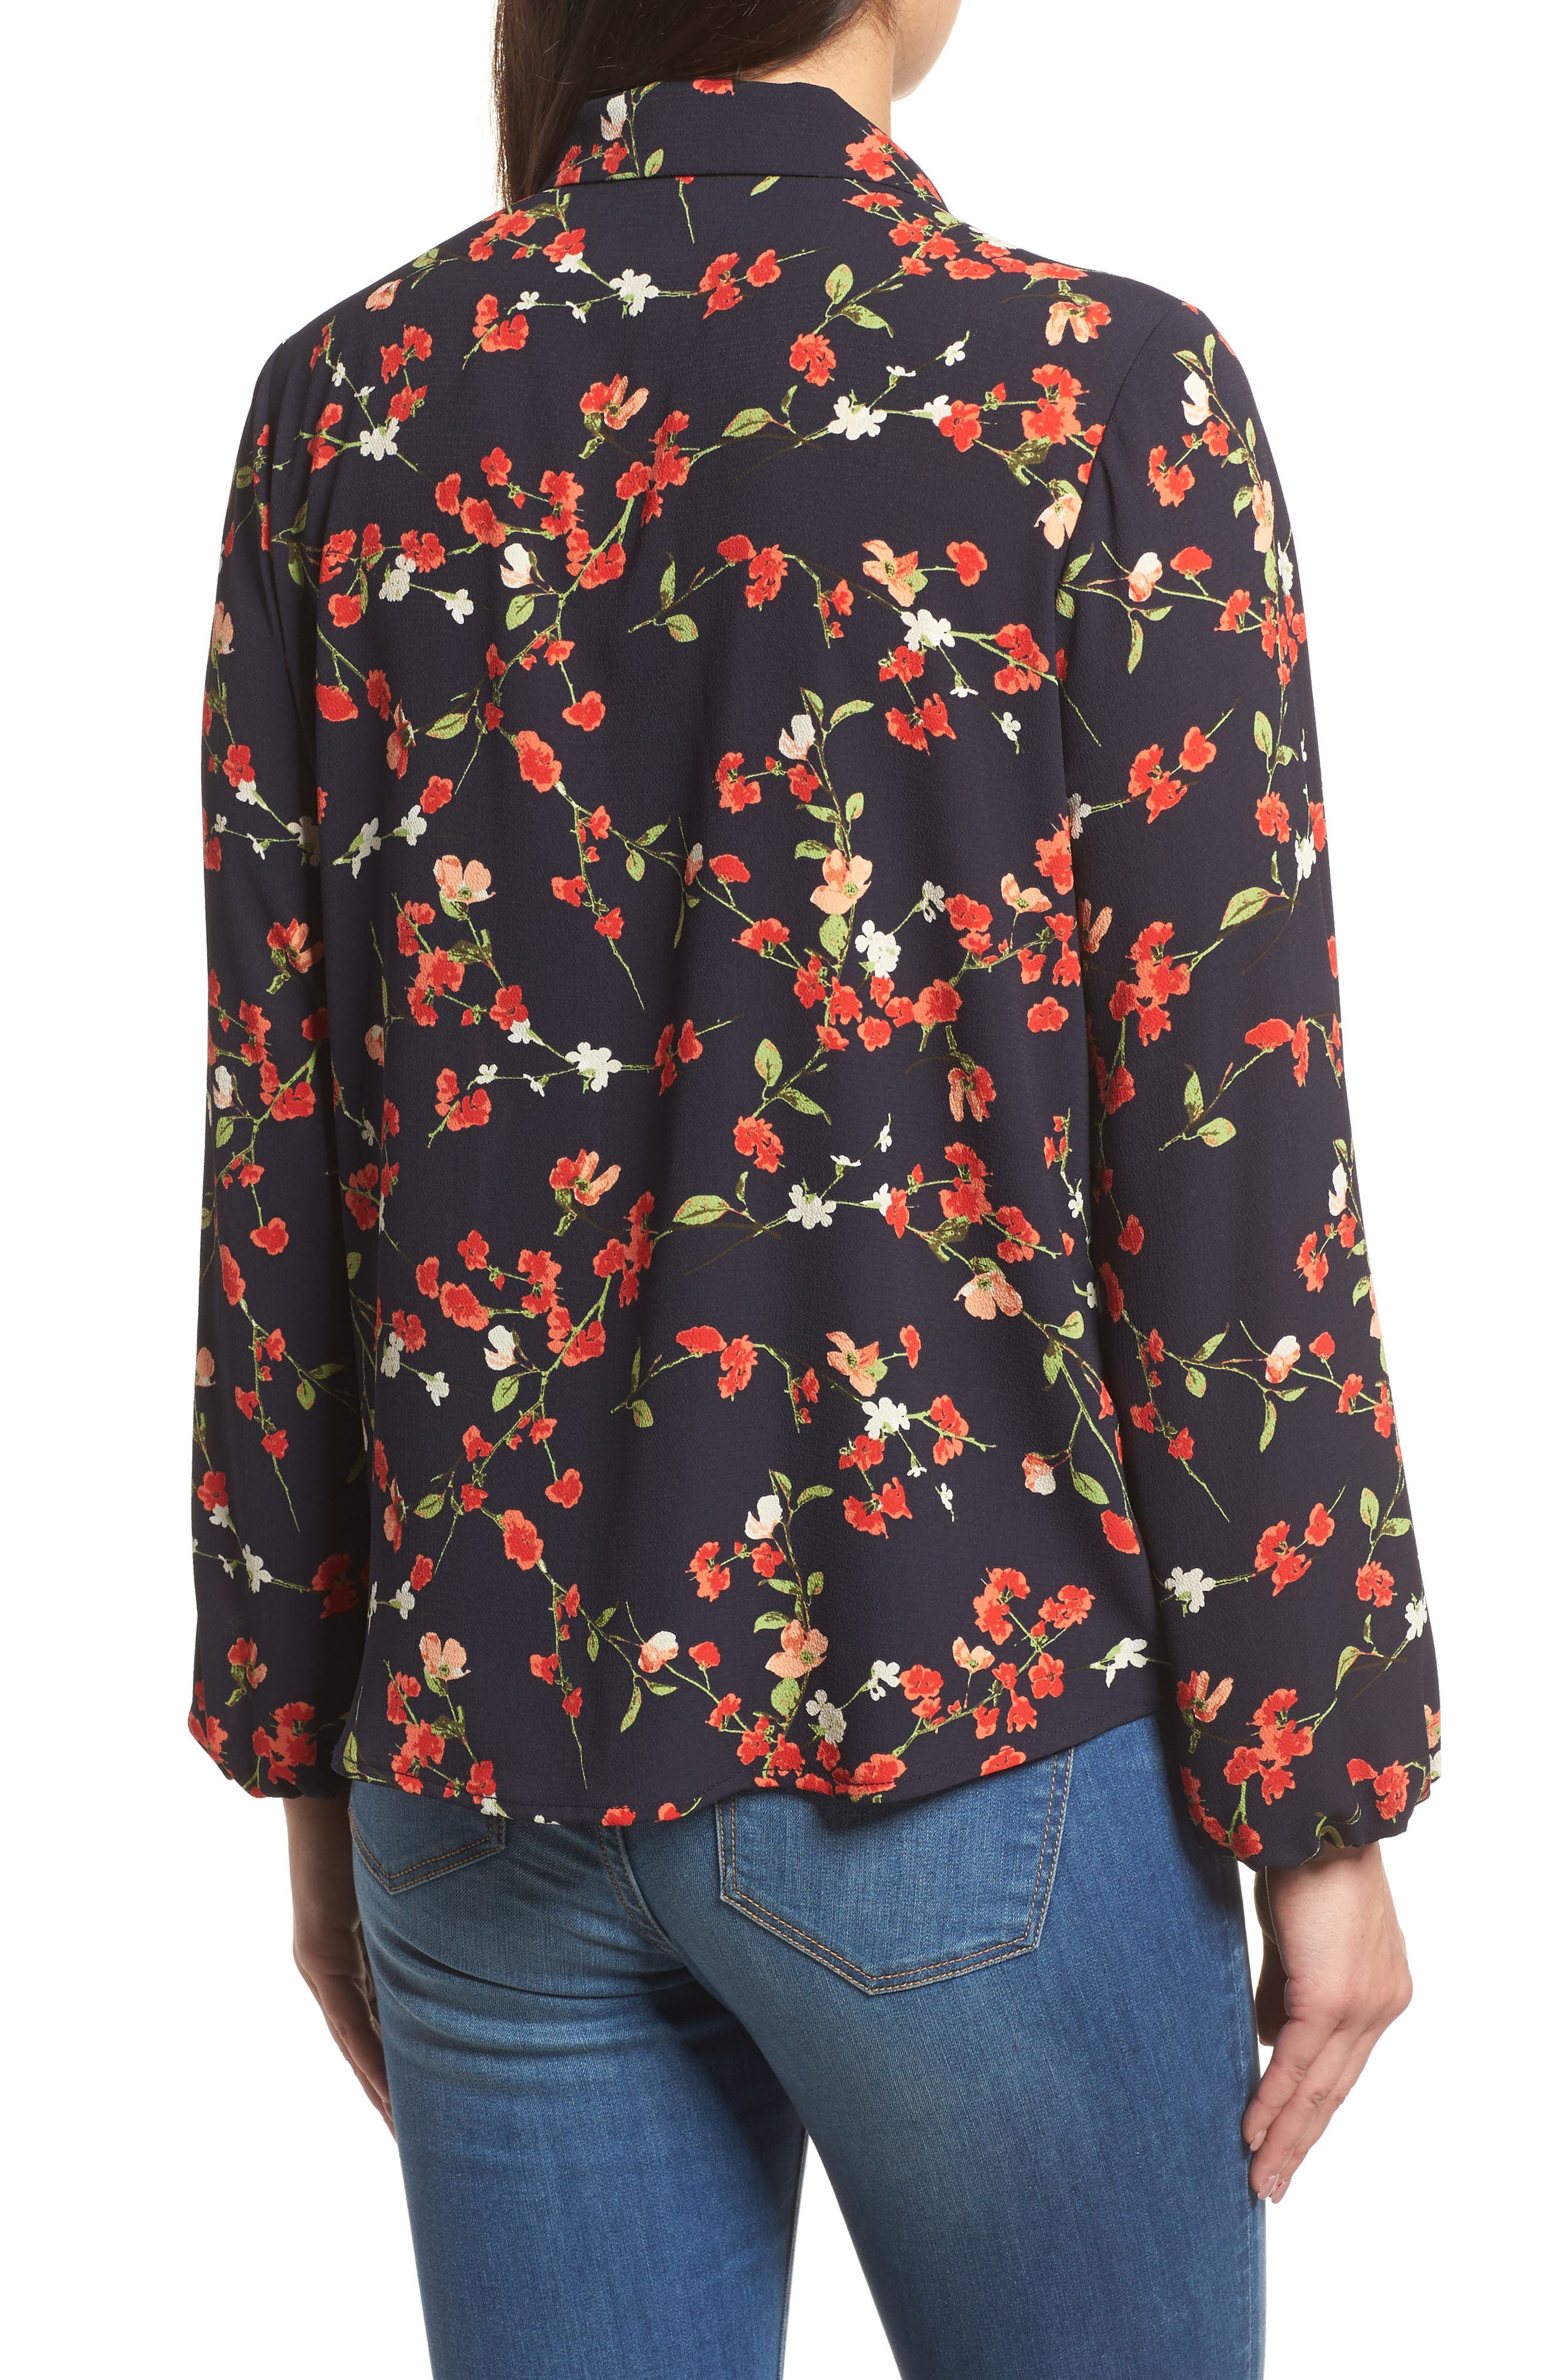 Relaxed Tie Front Top,                             Alternate thumbnail 2, color,                             Black Print With Red Flowers